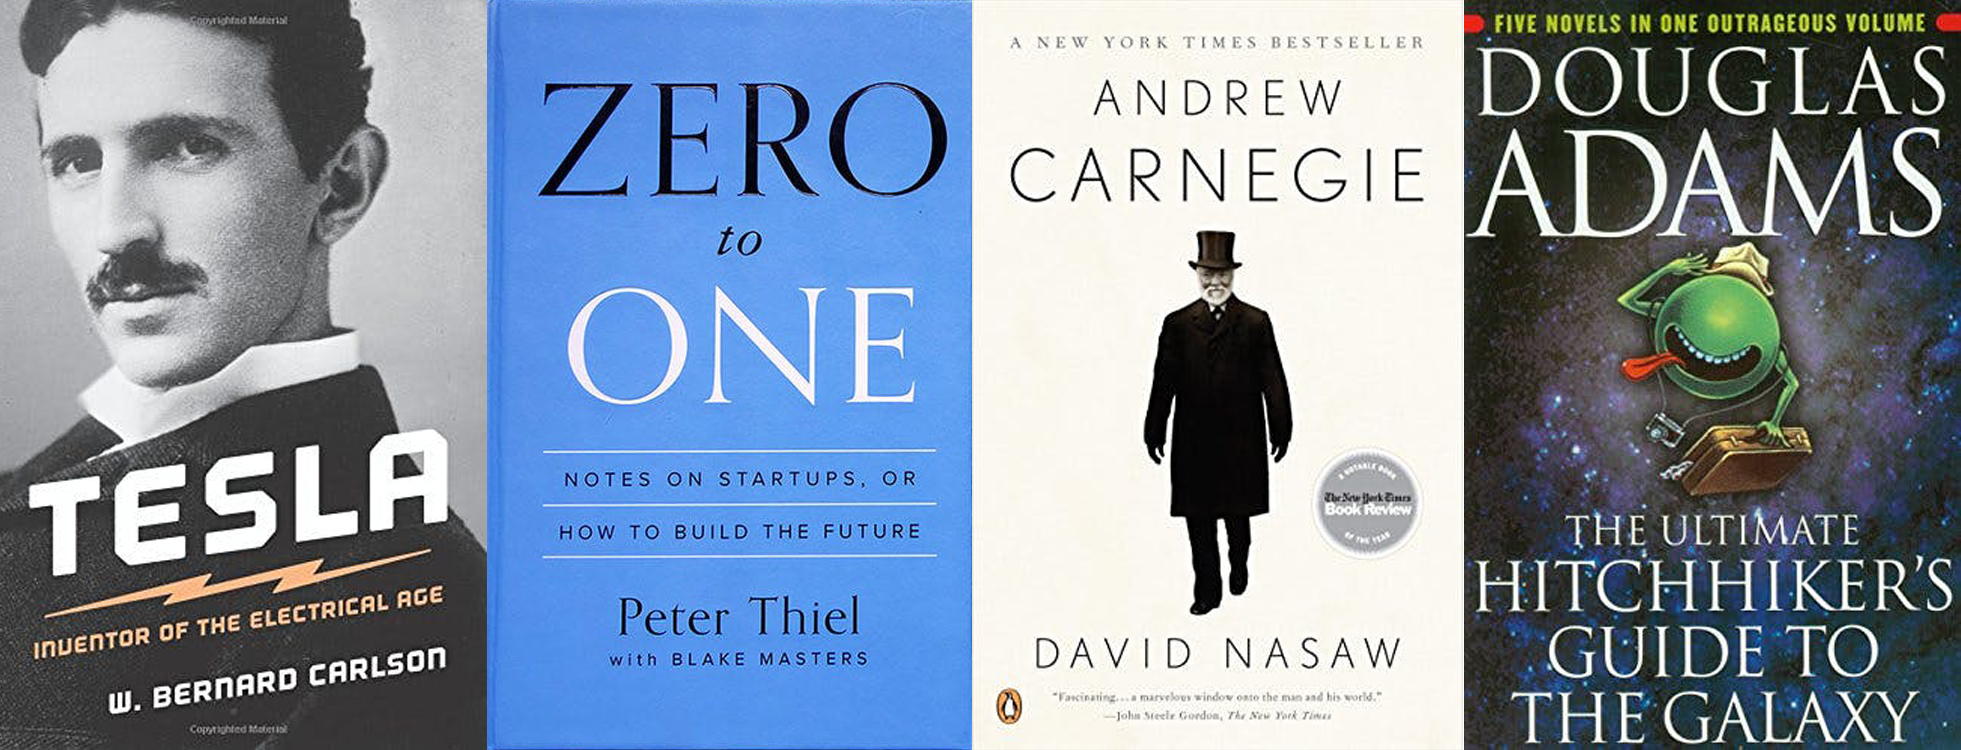 Tesla: Inventor of the Electric Age (W. Bernard Carlson); Zero to One (Peter Thiel); Andrew Carnegie (David Nasaw); The Ultimate Hitchhiker's Guide to the Galaxy (Douglas Adams)